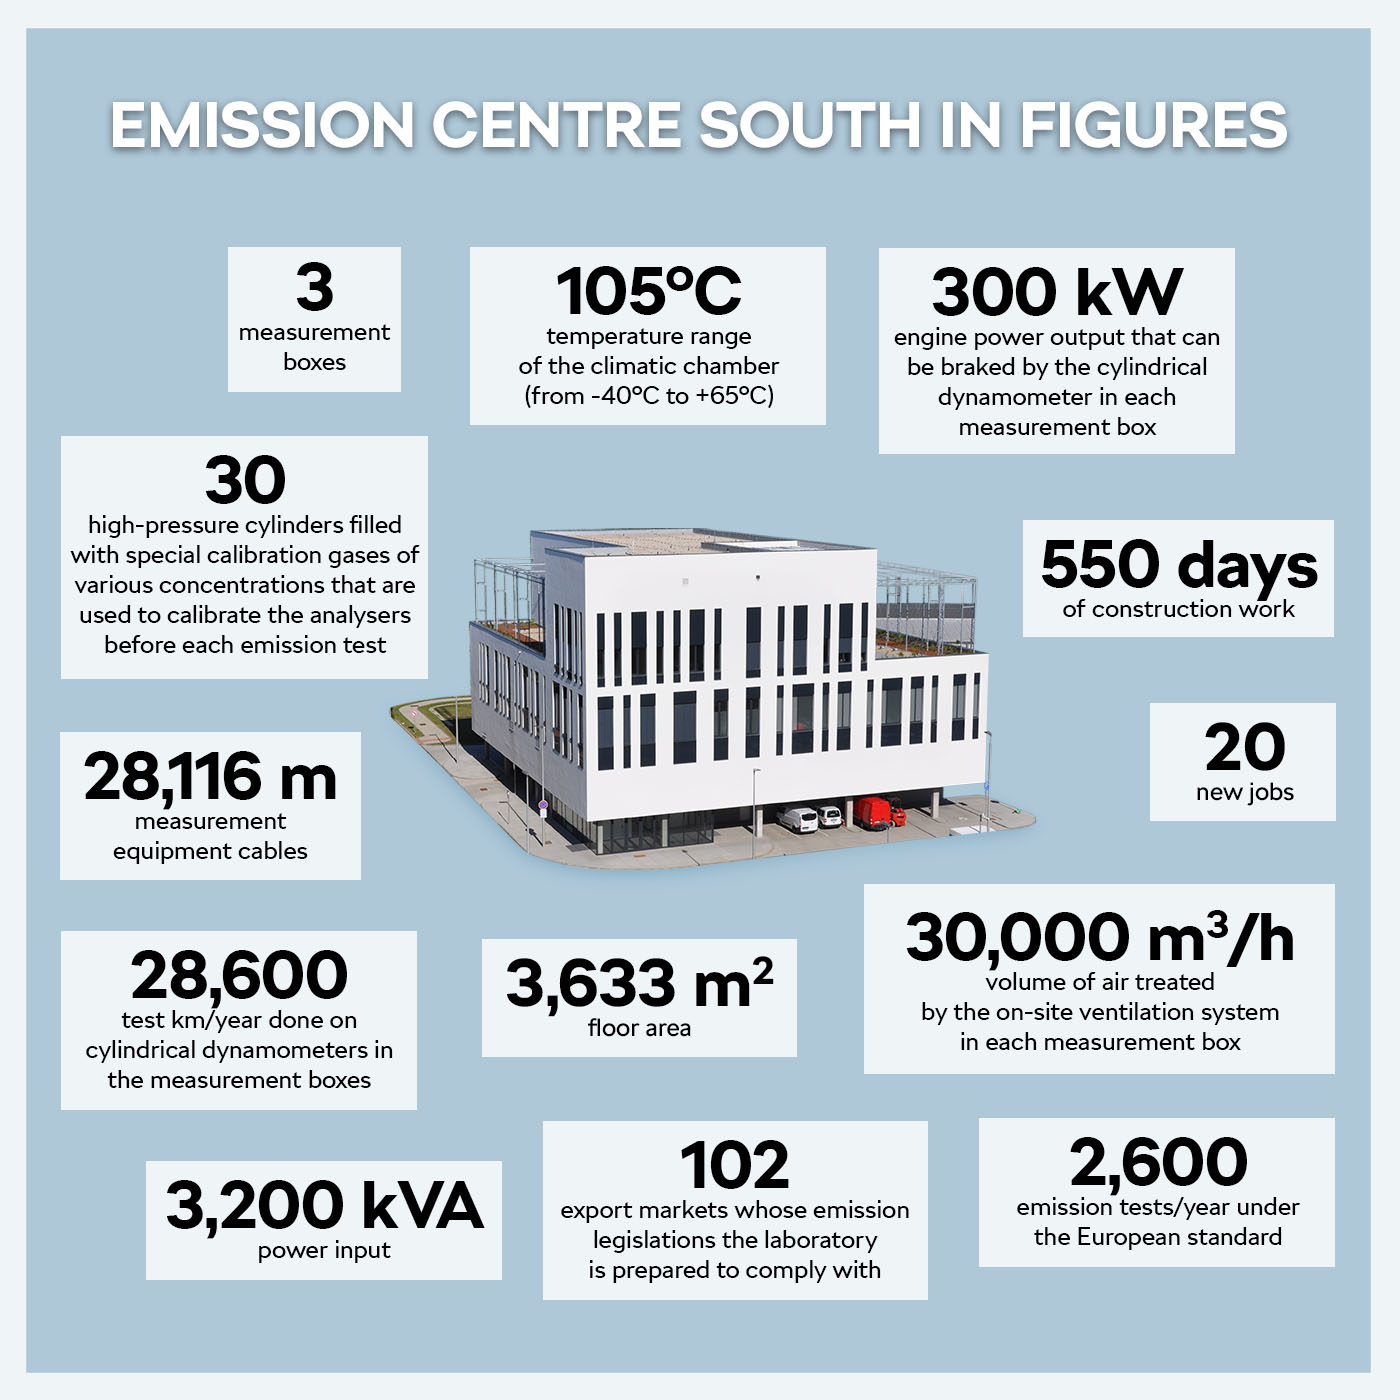 Emission Centre in Figures